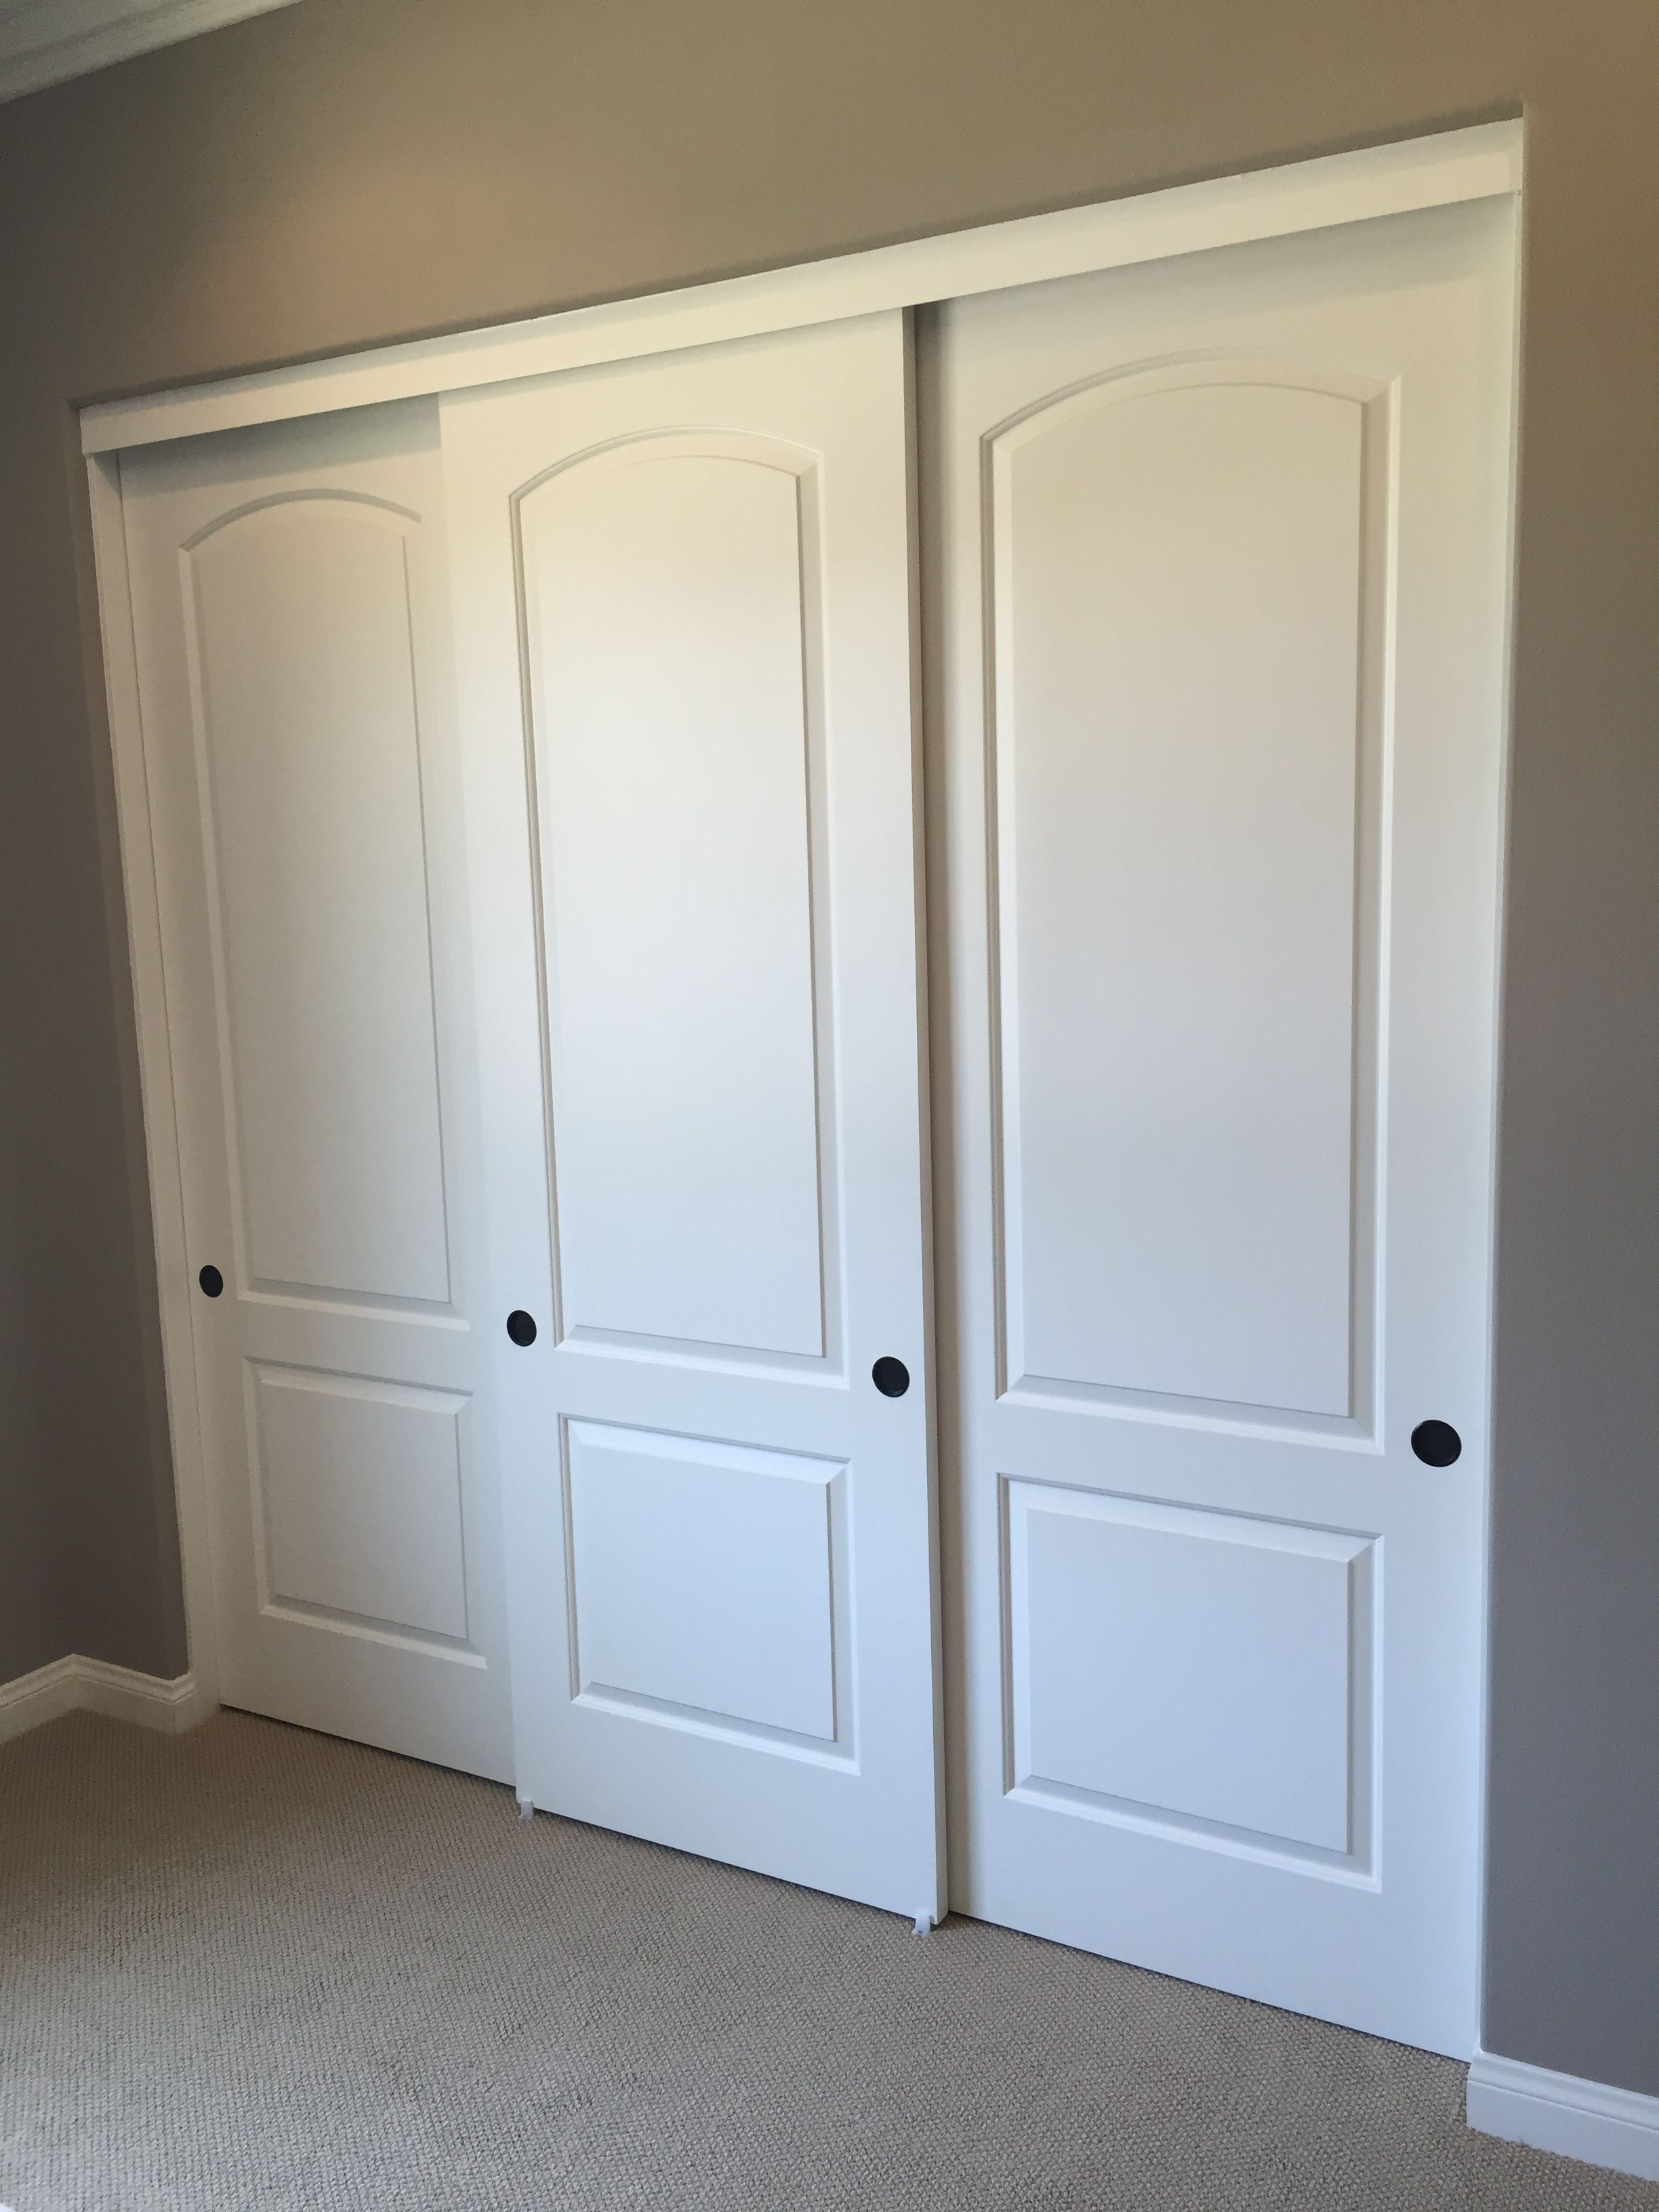 Sliding bypass closet doors of southern california are for Bedroom closet barn doors